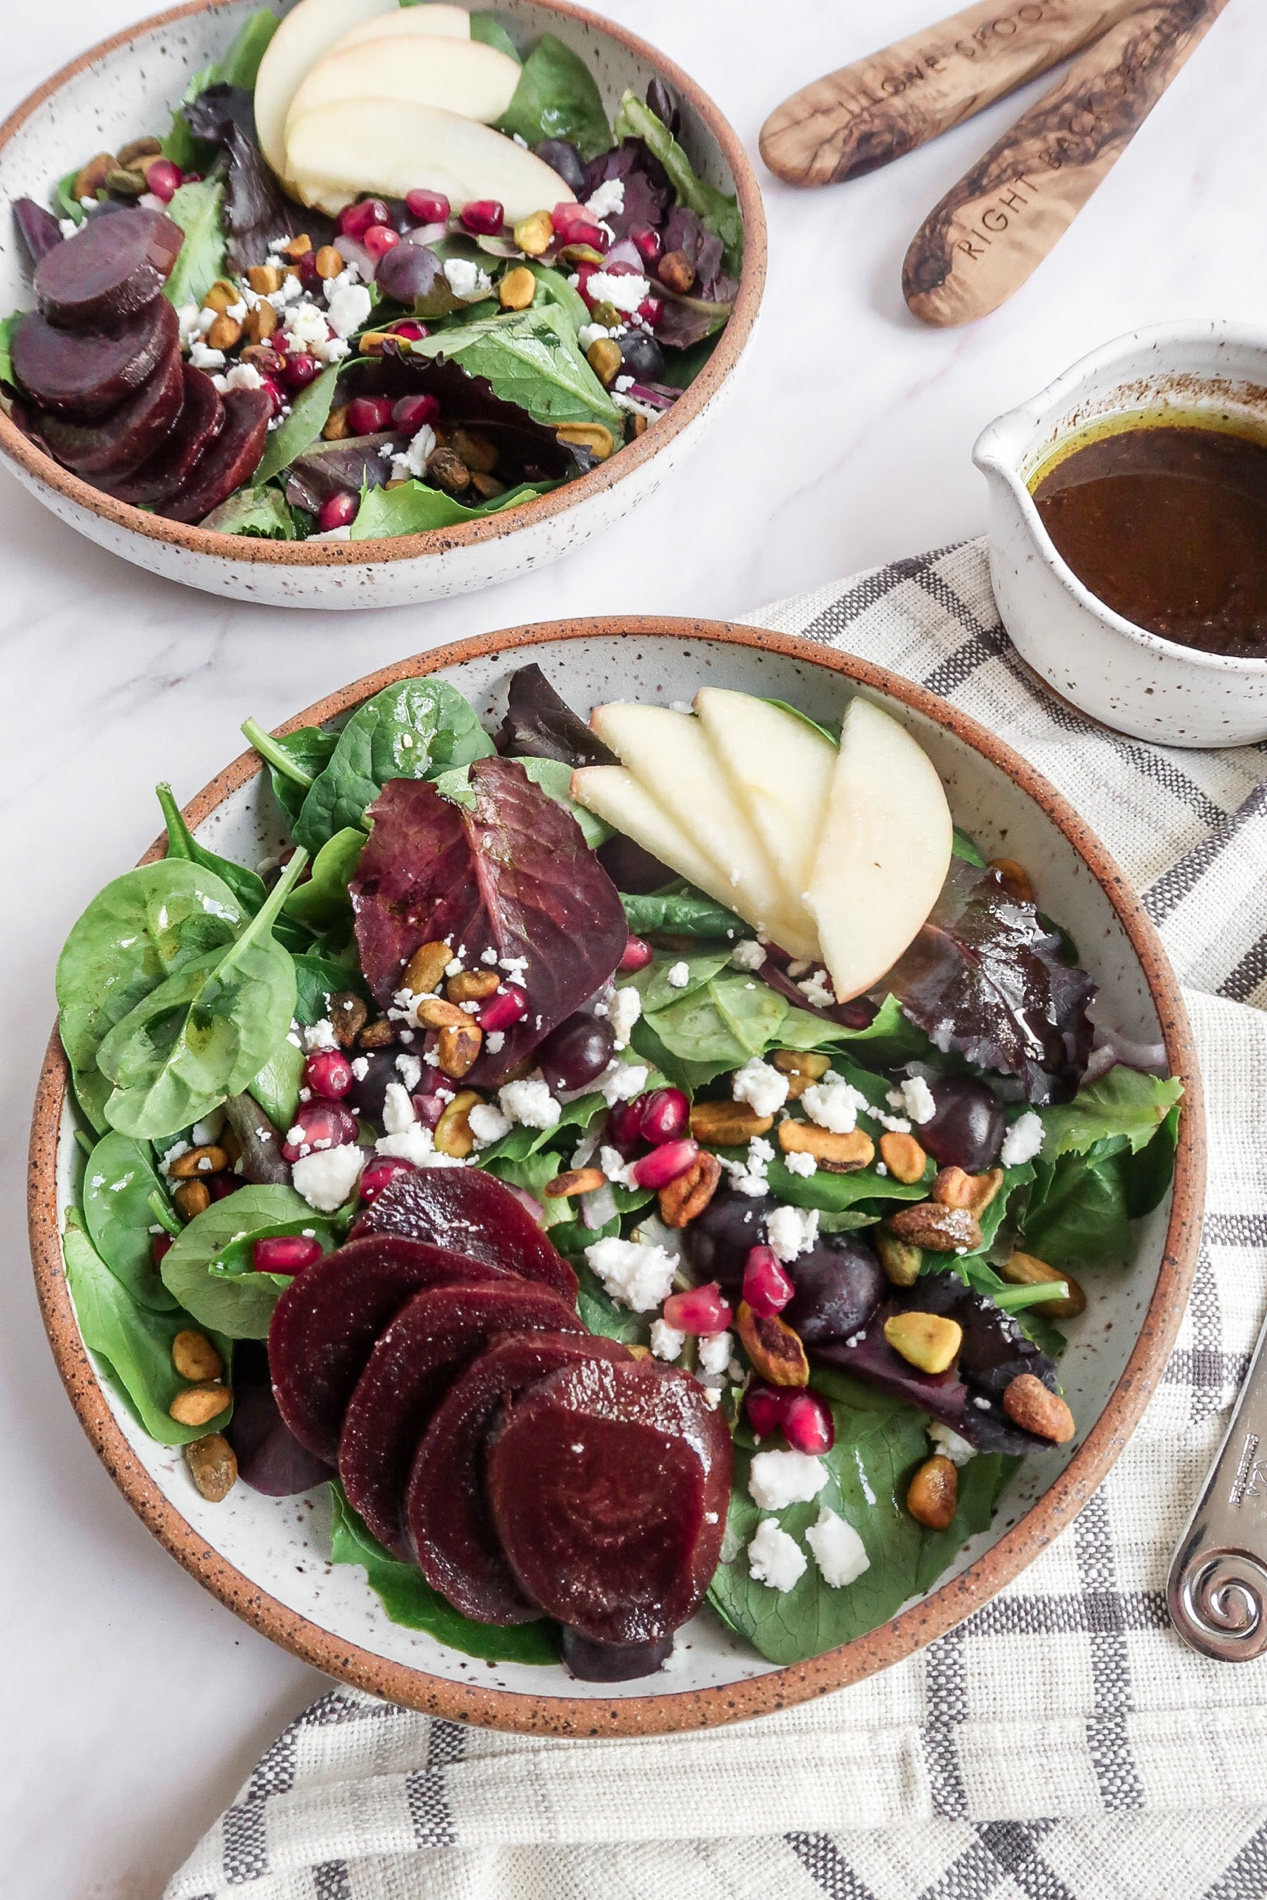 Roasted Beet Salad with Honey Balsamic Dressing